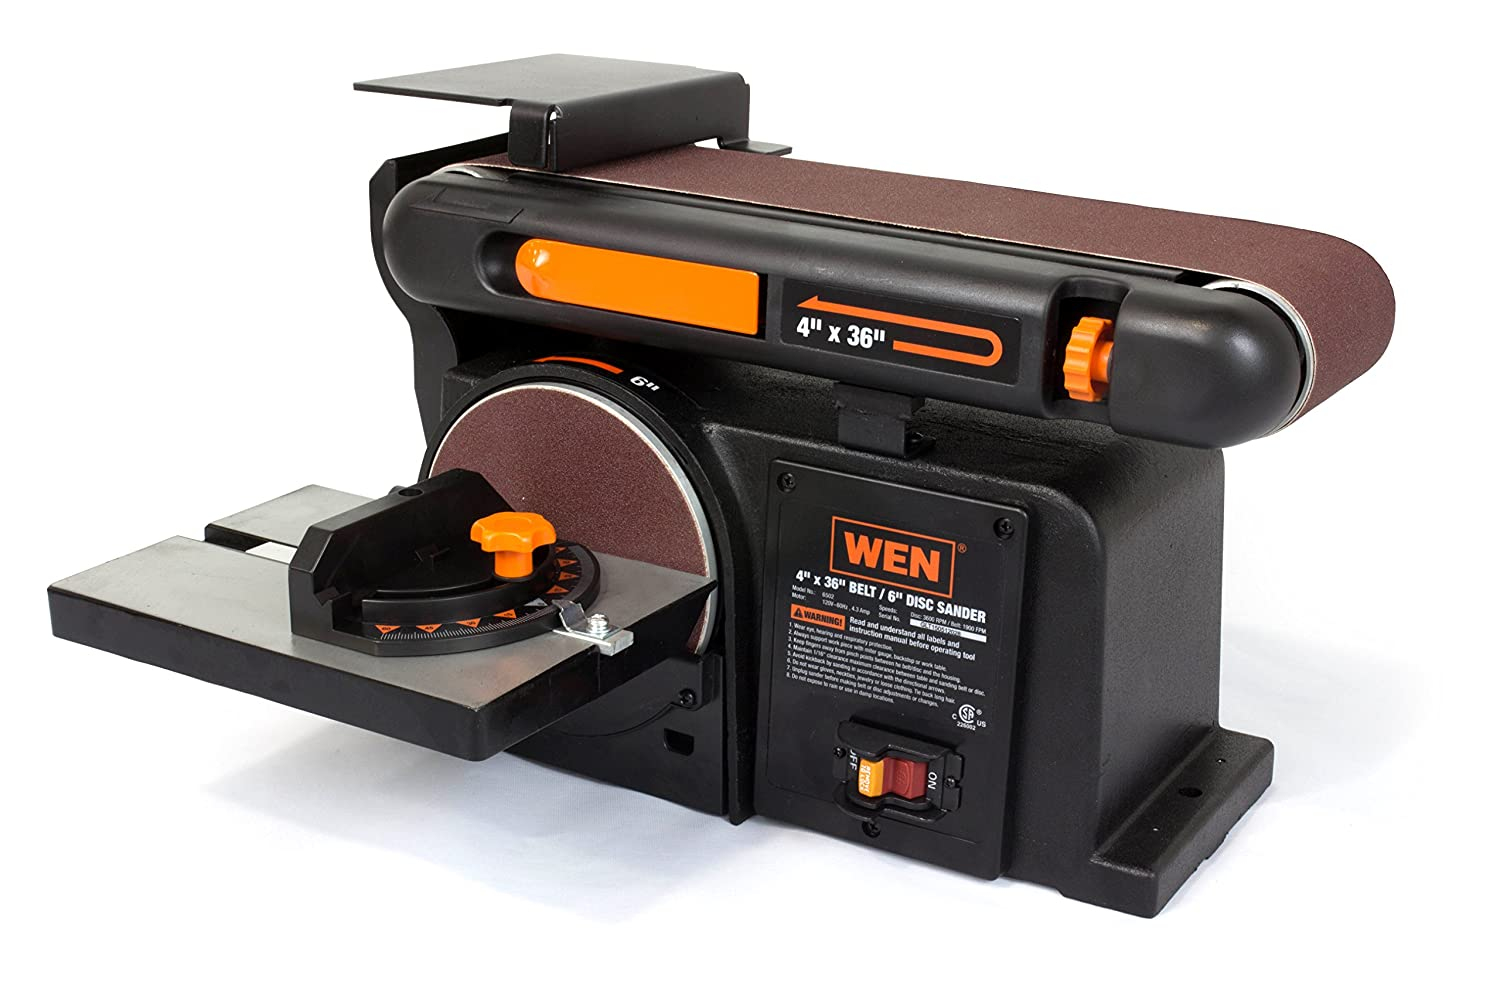 Wen 6502t 4 3 Amp 4 X 36 In Belt And 6 In Disc Sander With Cast